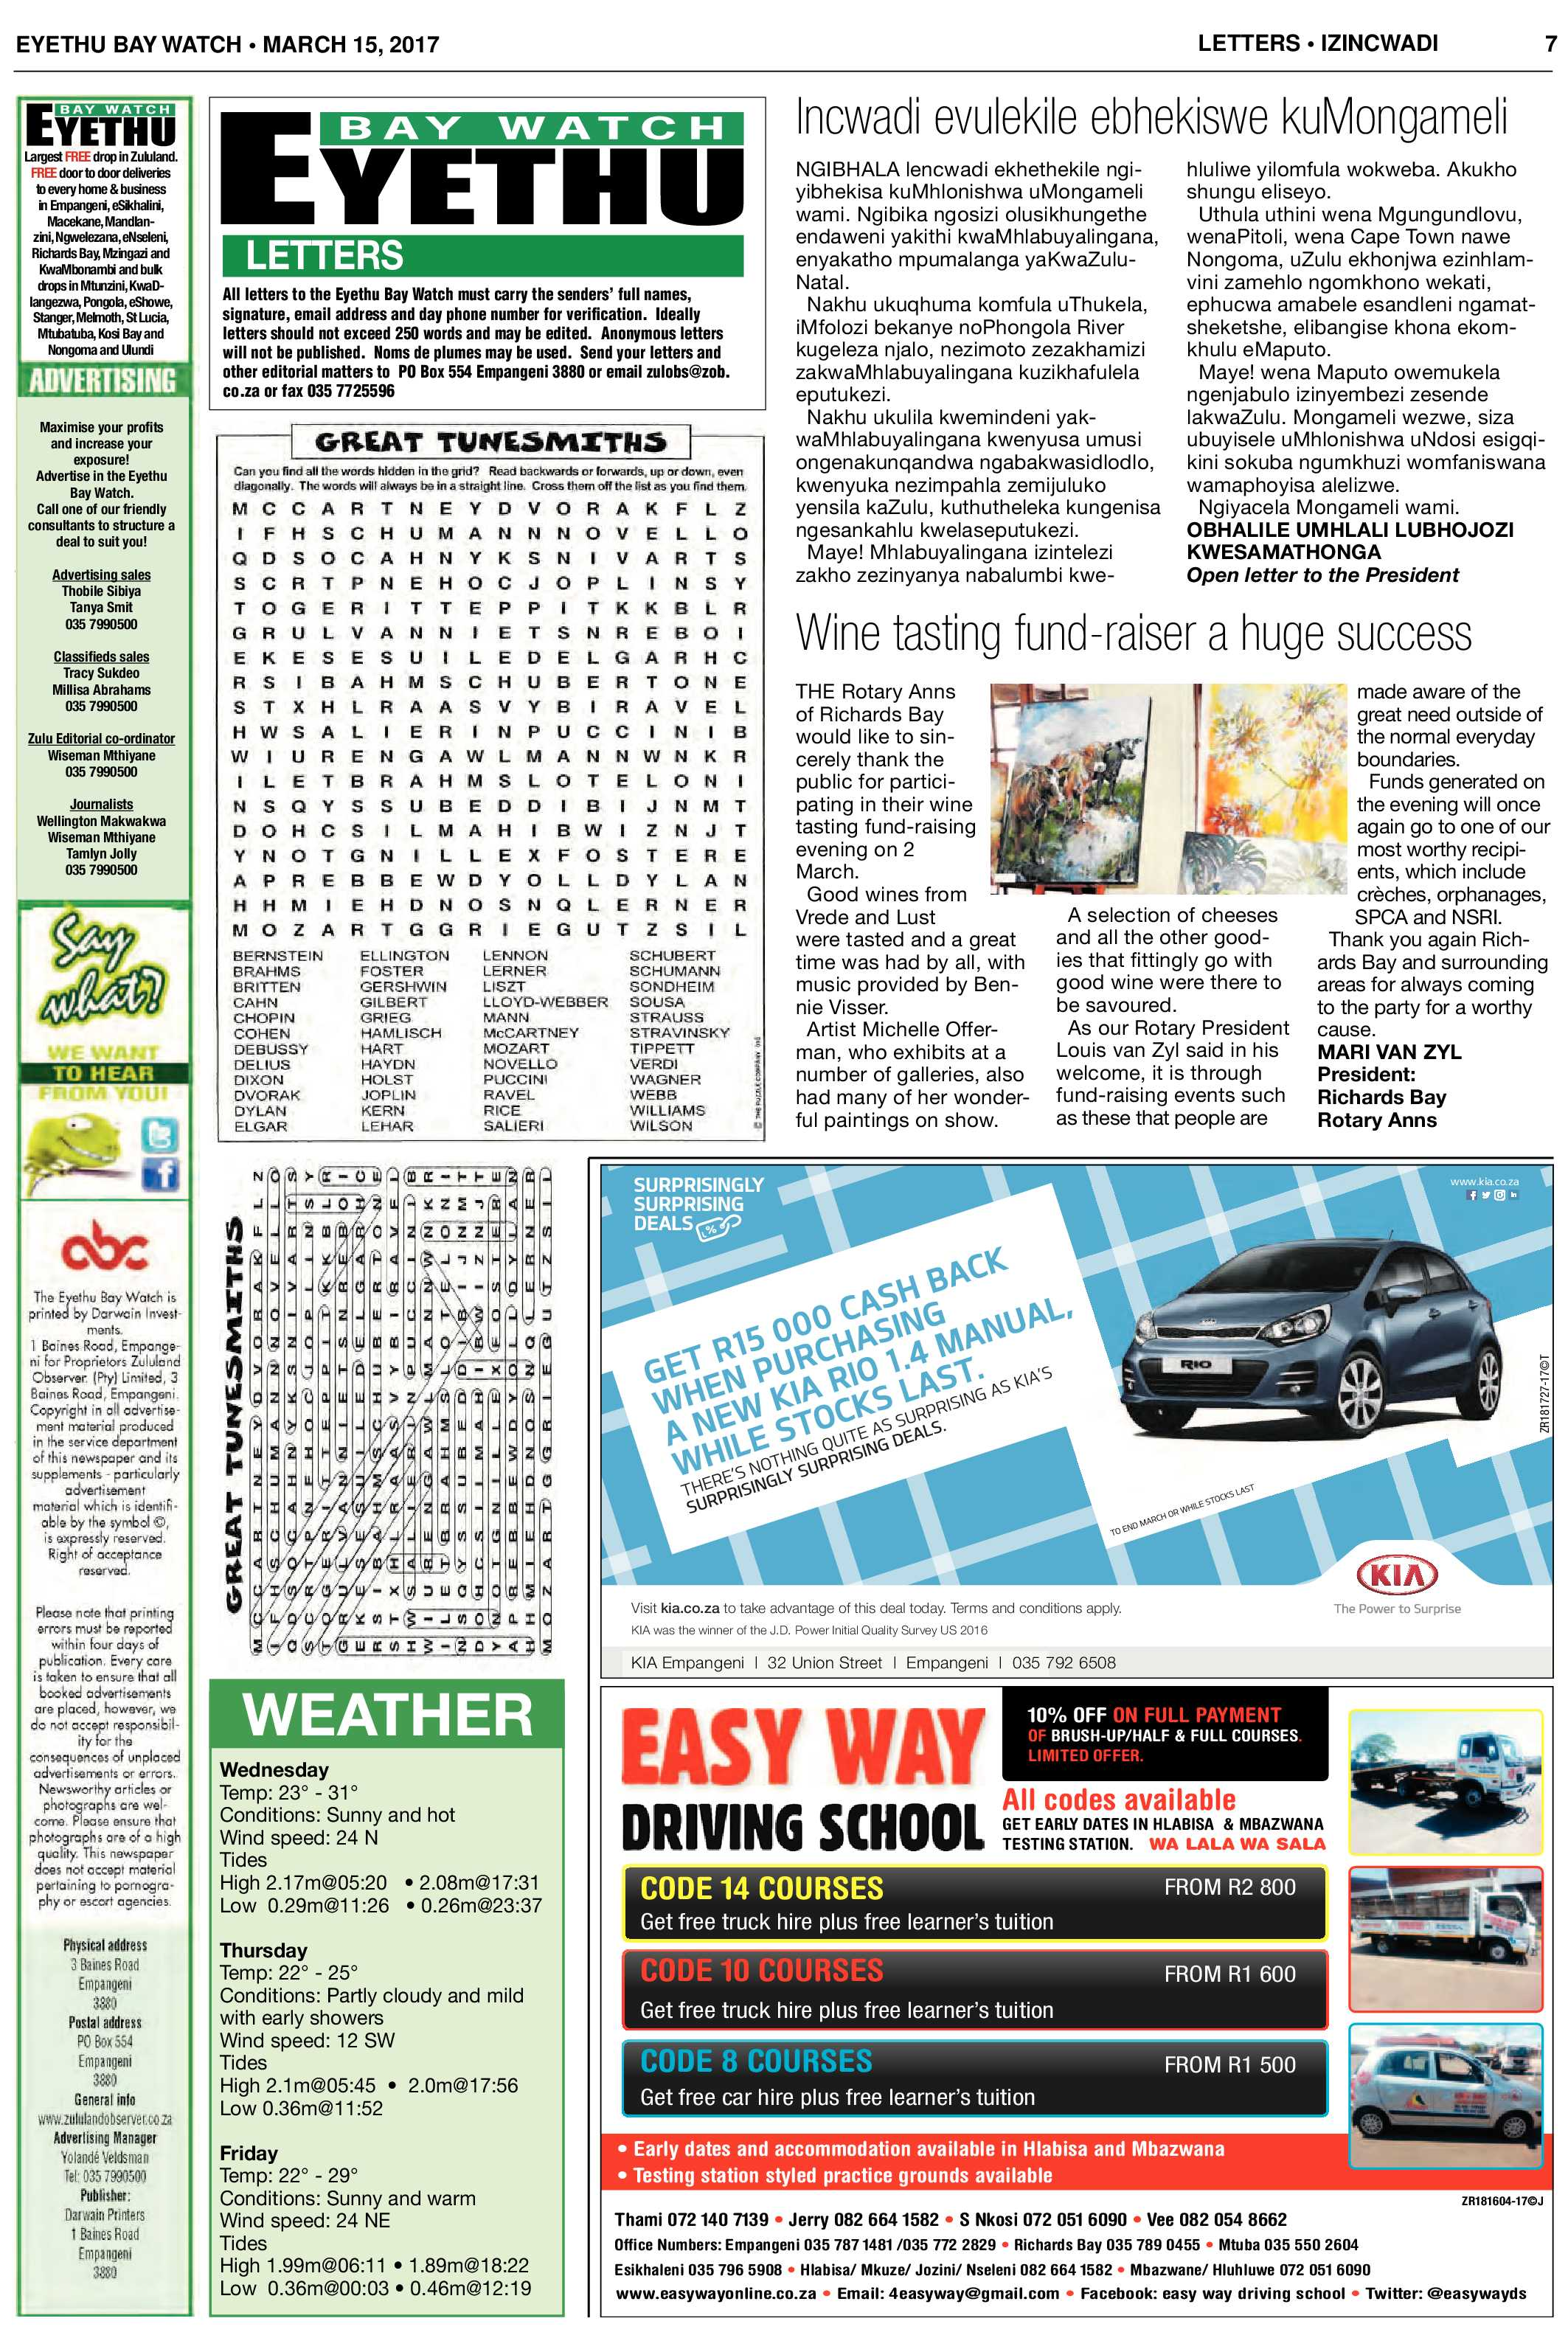 eyethu-baywatch-15-march-epapers-page-7